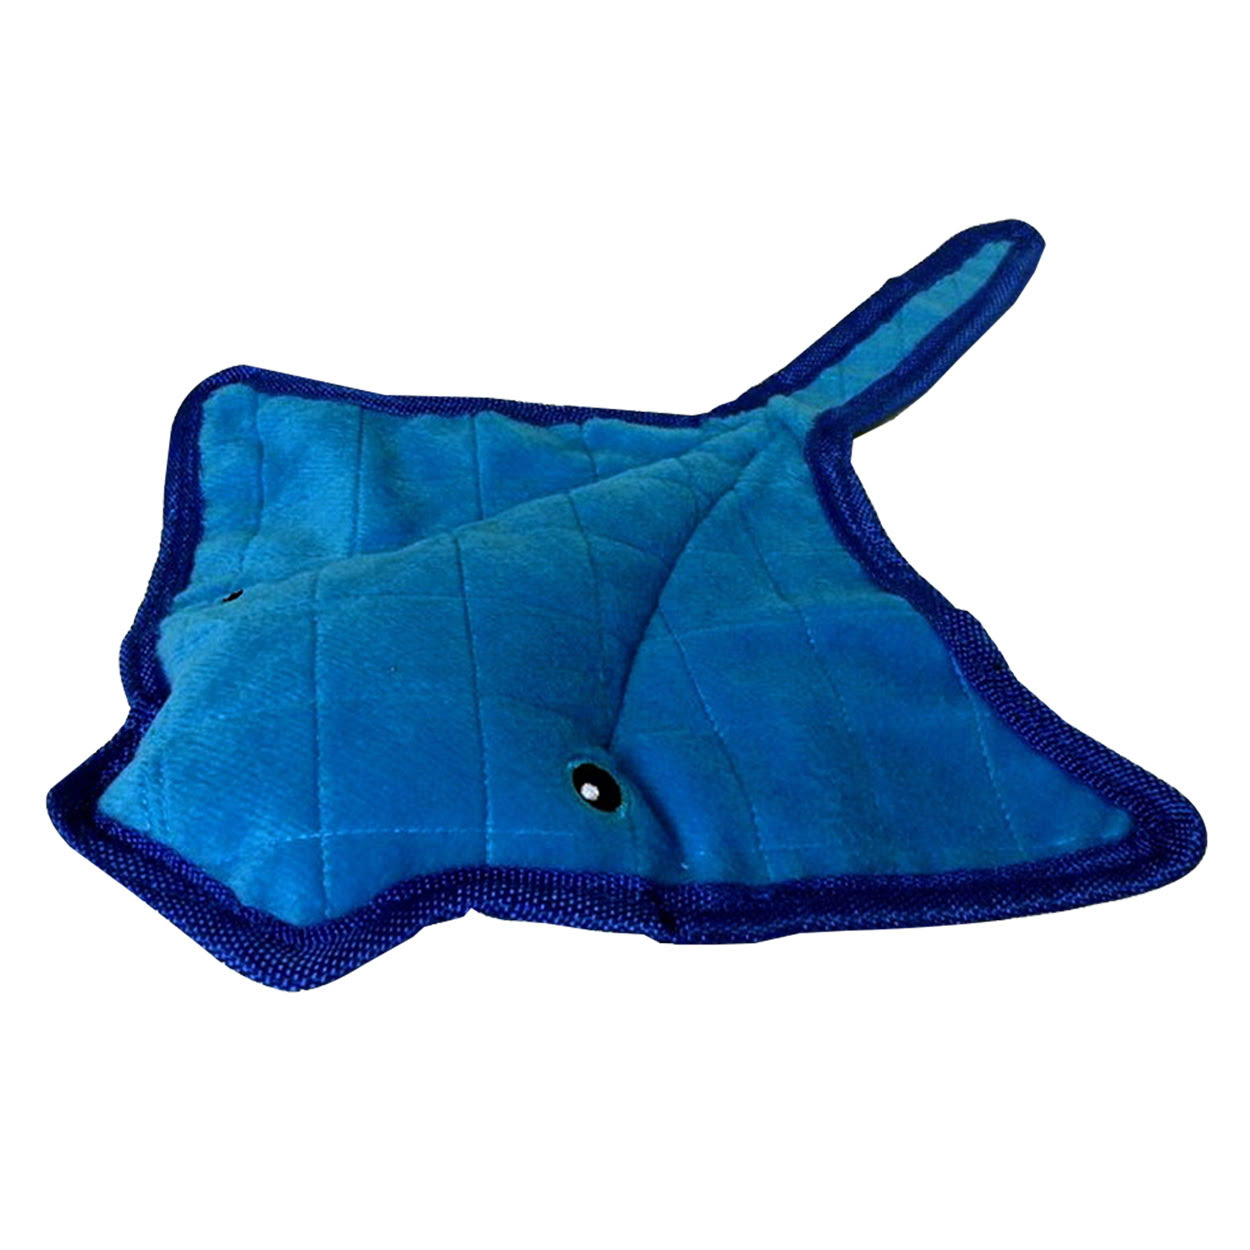 Pet Lou Bite Me Stingray Soft Durable Squeaker Floats Pet Interactive Dog Toy - 14""